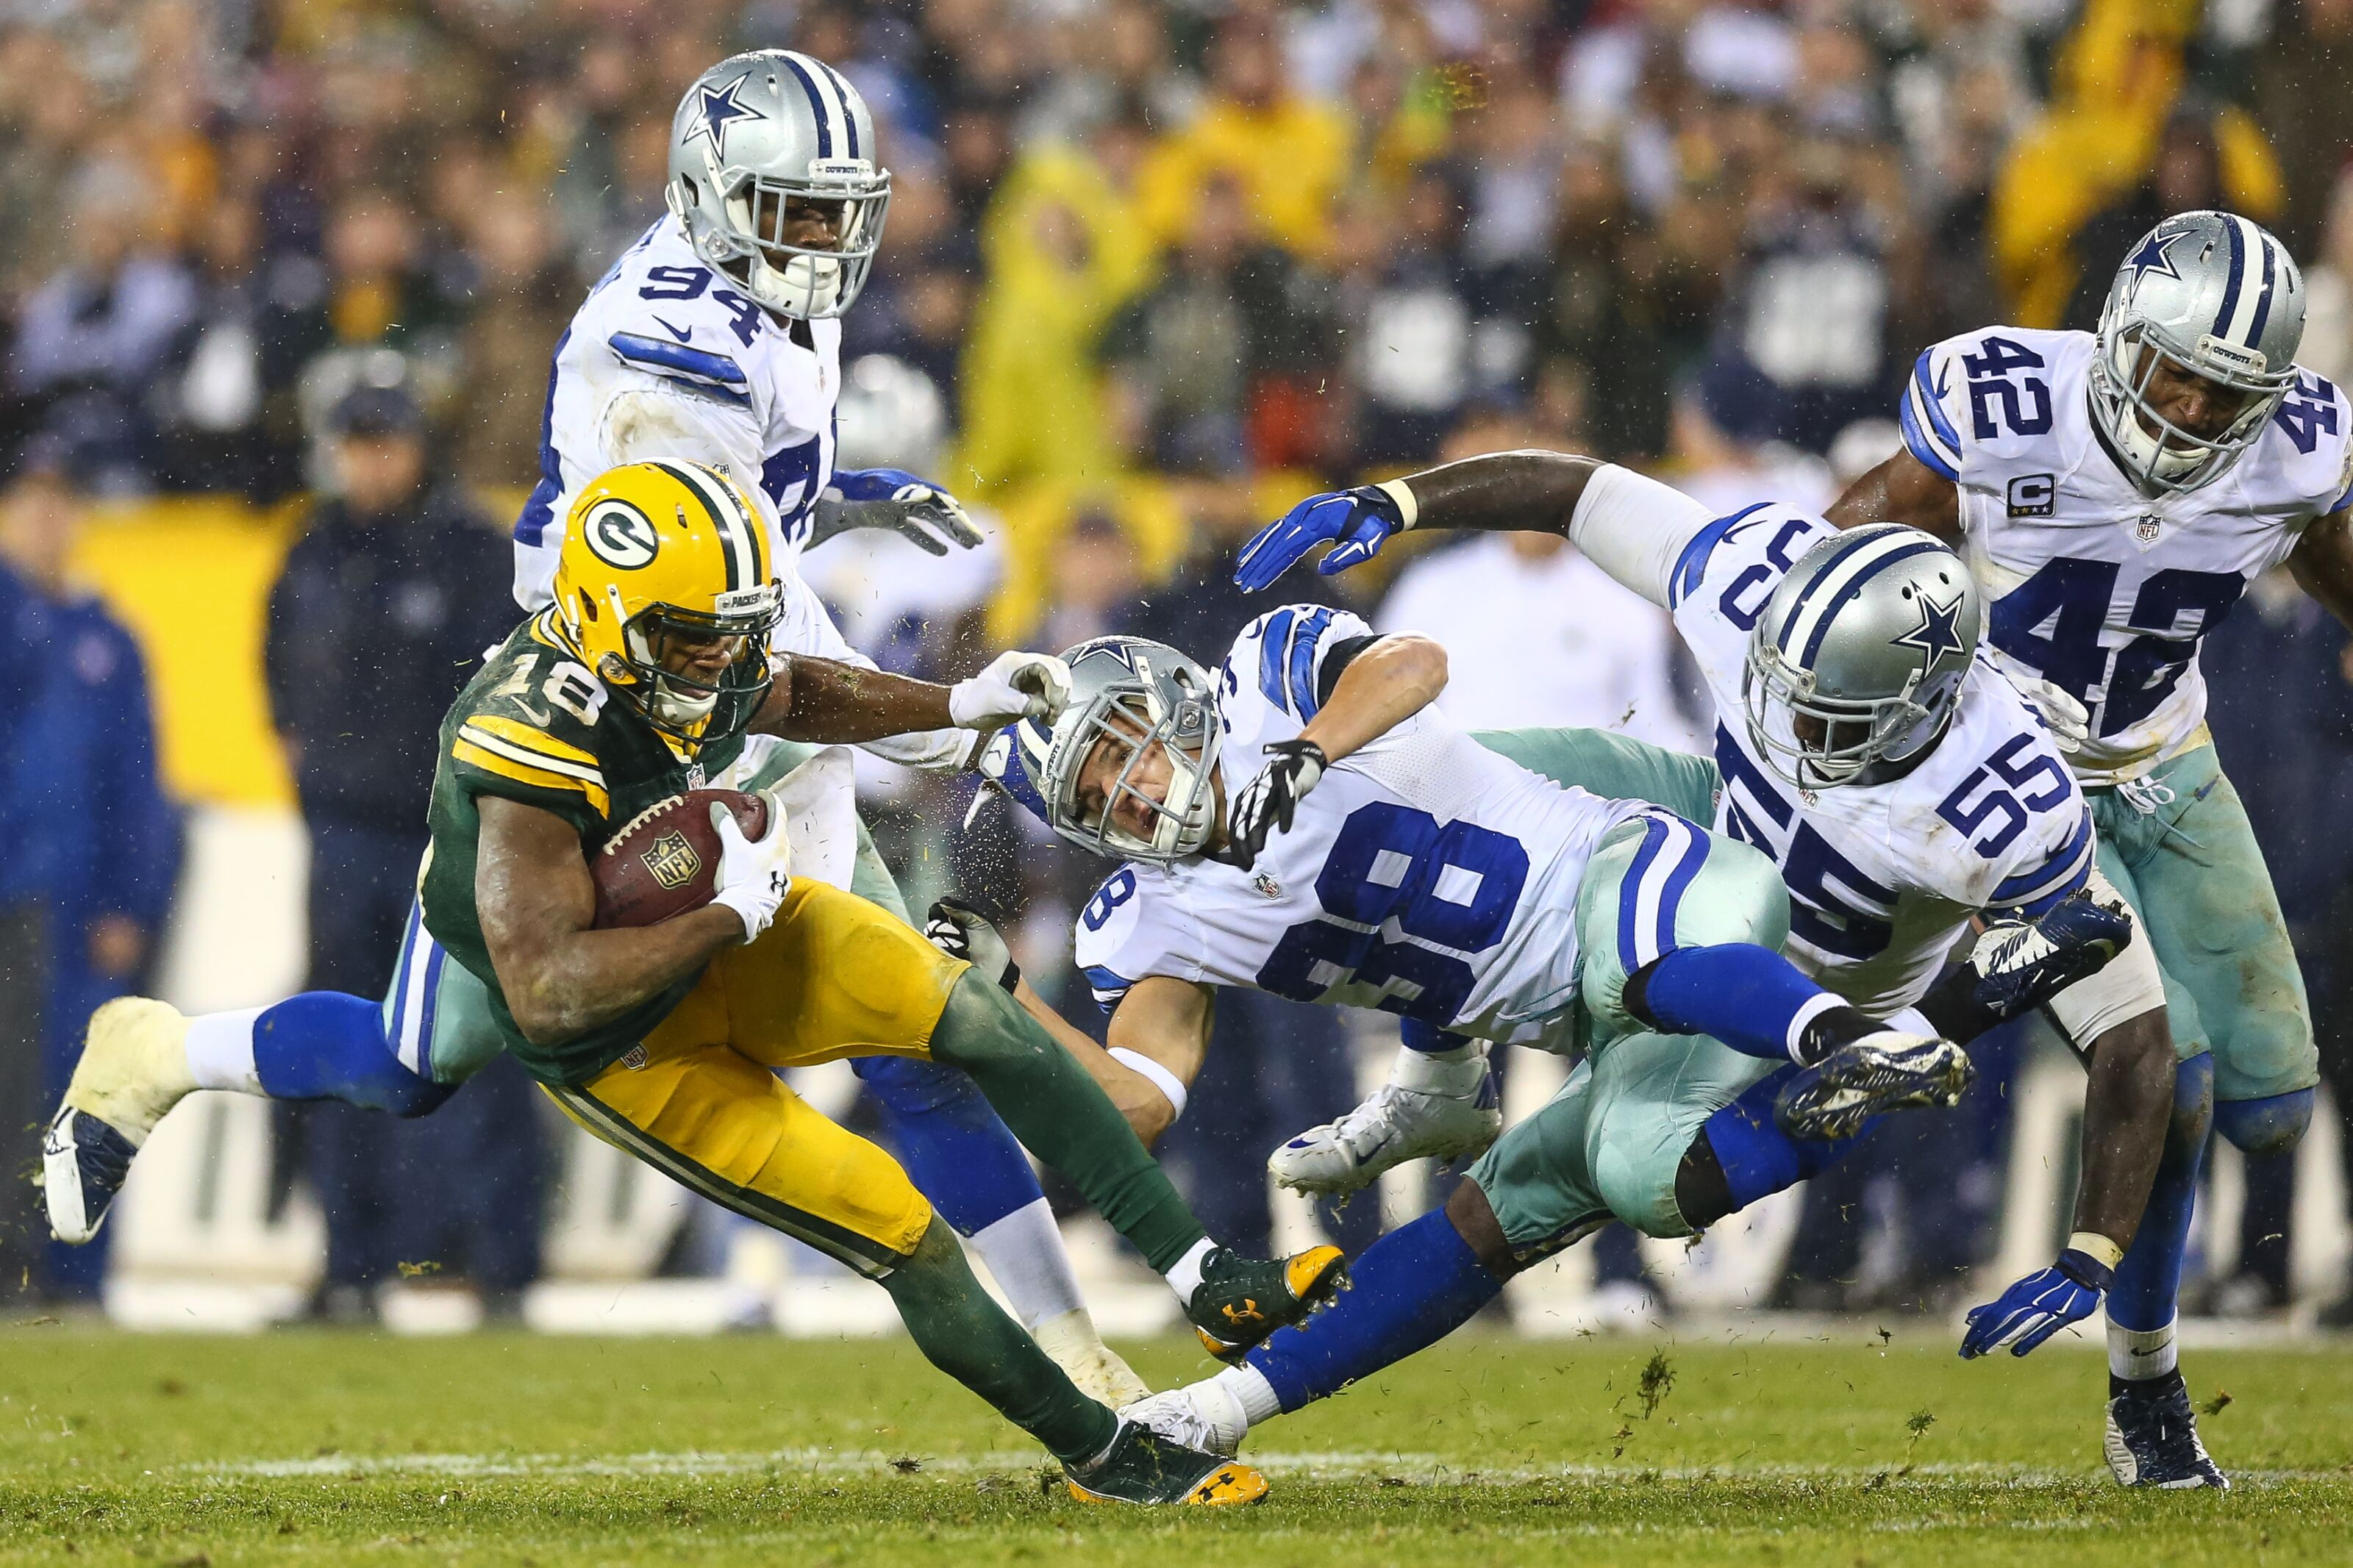 Randall Cobb vs. Cole Beasley: Did the Dallas Cowboys upgrade at receiver?